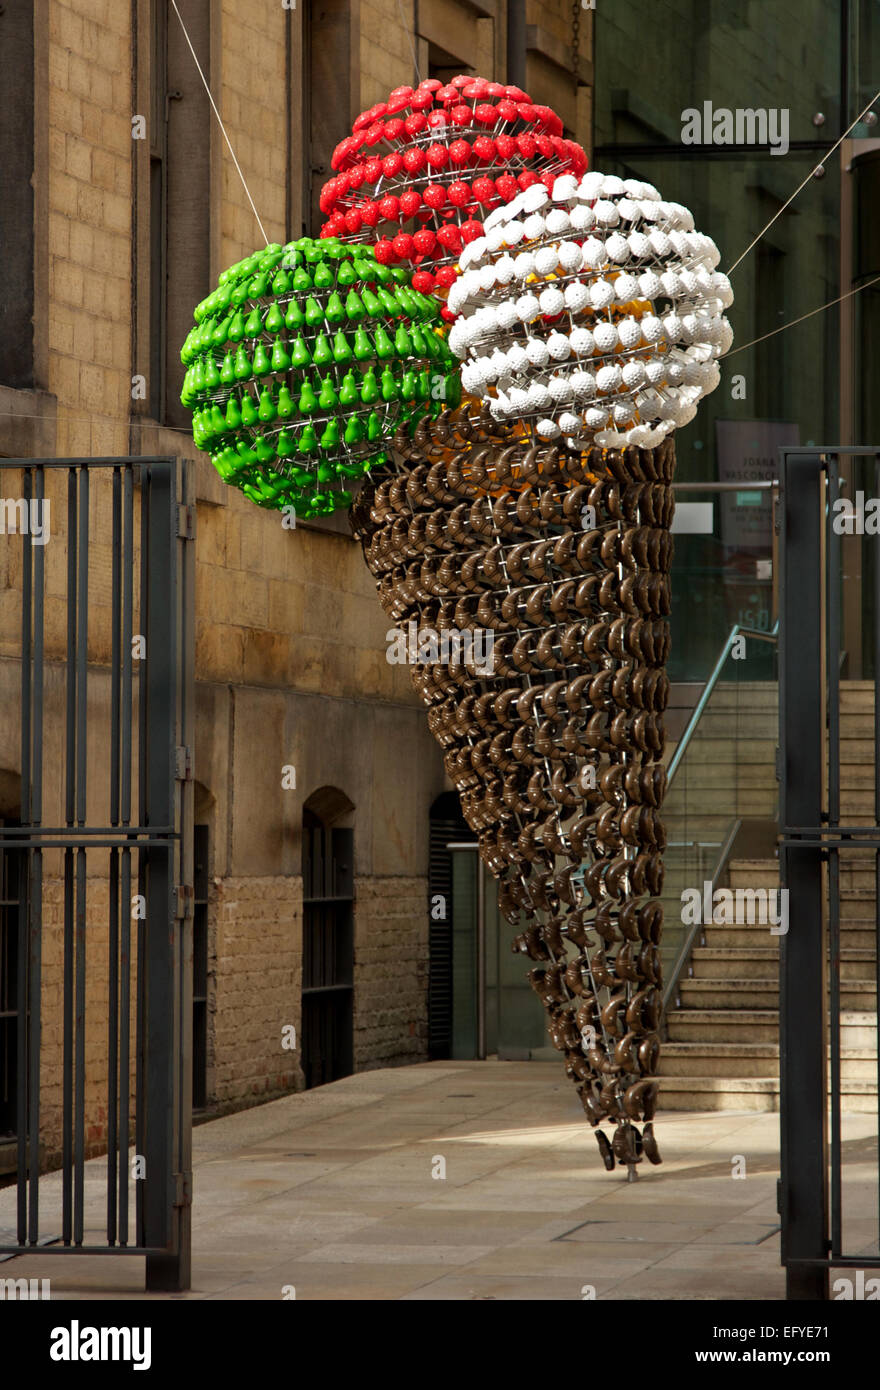 Artistic icecream cone at the entrance to Manchester Art Gallery, England - Stock Image